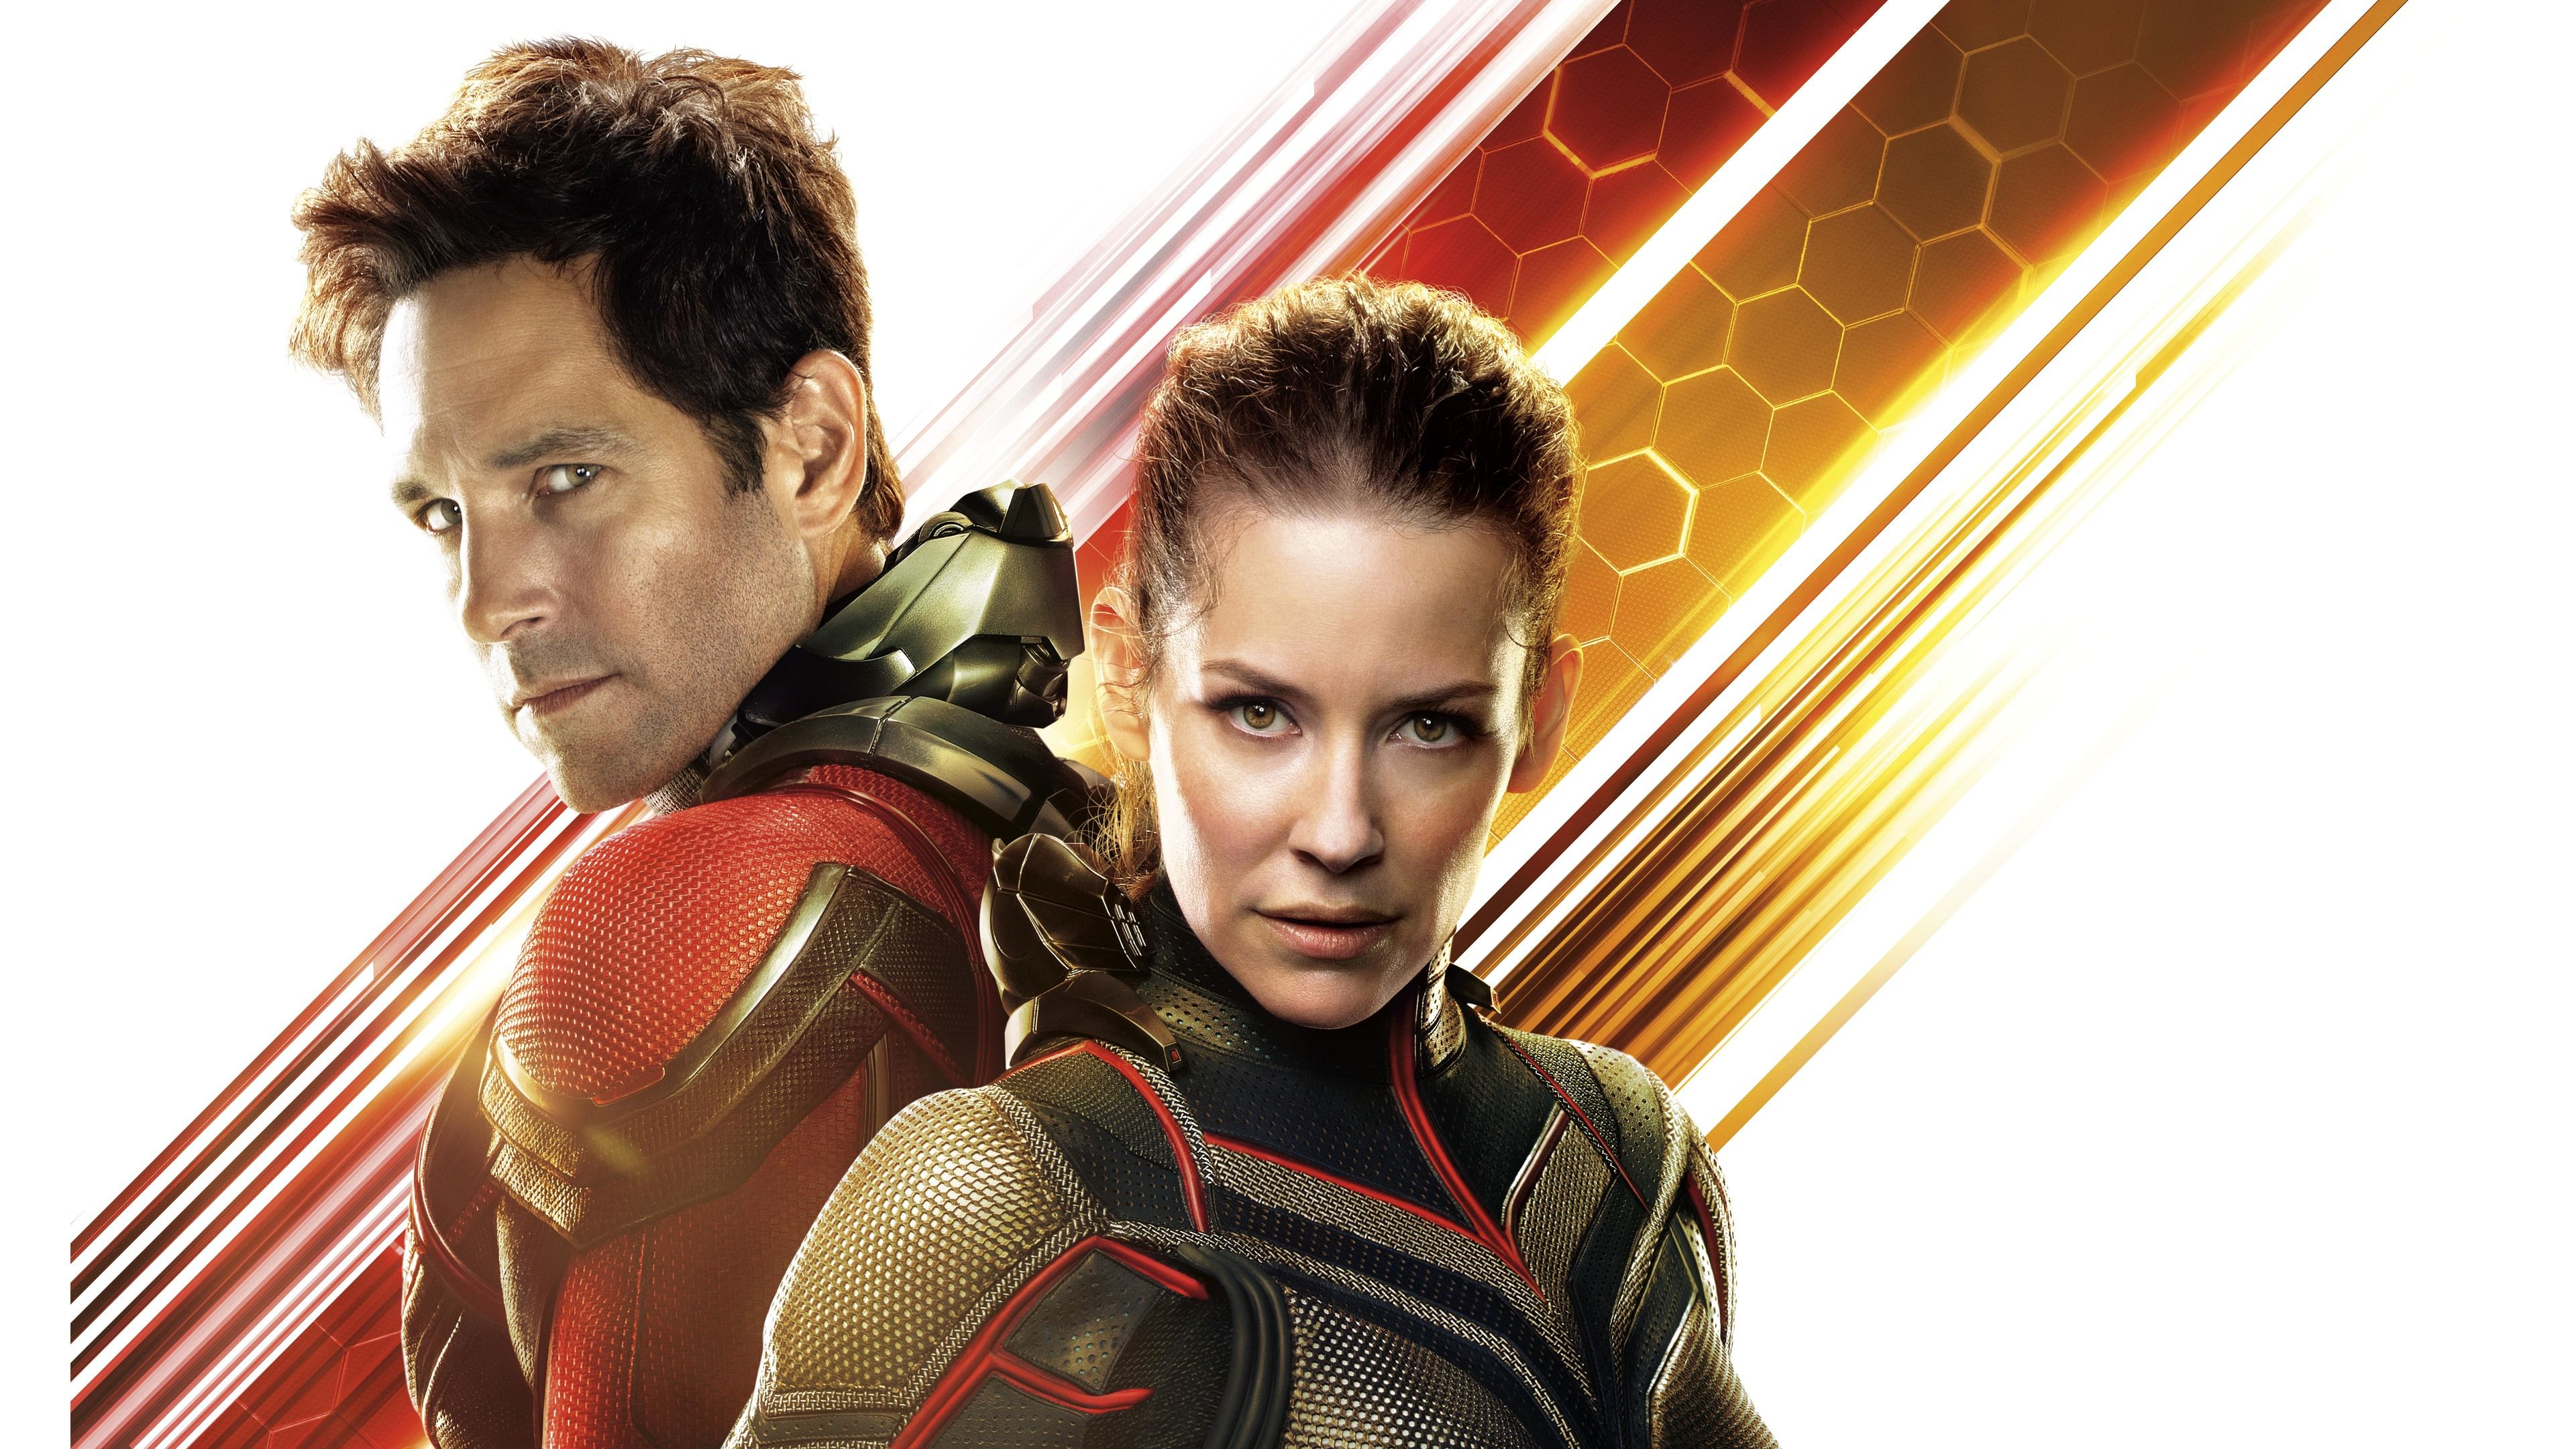 Ant Man And The Wasp Movie 4k Movies Wallpapers Hd Wallpapers Ant Man Wallpapers Ant Man And The Wasp Wallpapers 8k Wal Wasp Movie Movie Wallpapers Ant Man